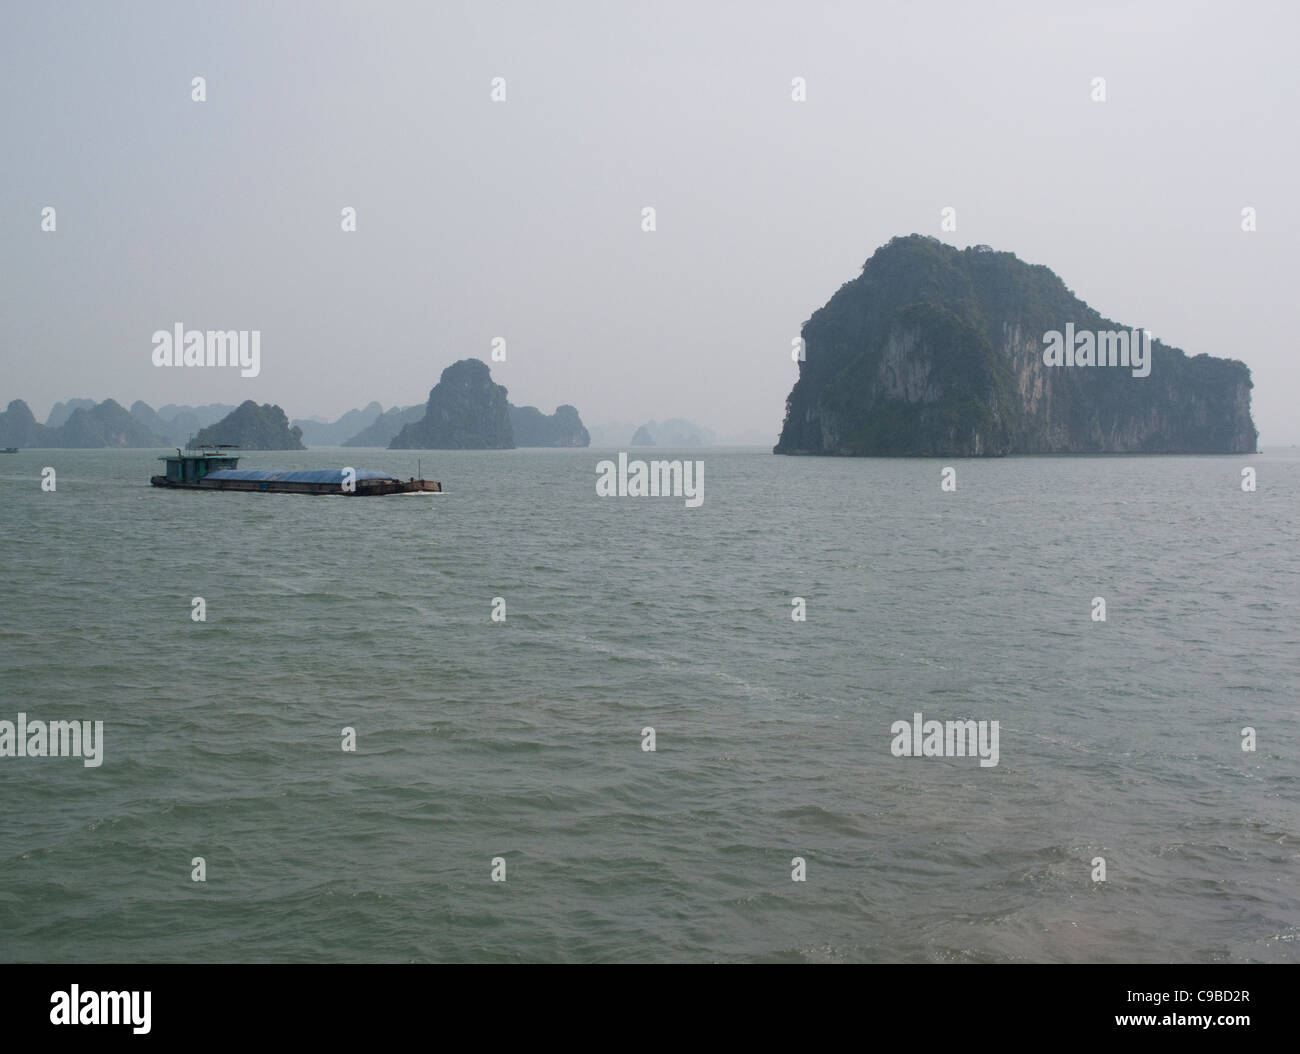 Cargo boat passing Halong Bay rock formations in the South China Sea, Vietnam - Stock Image